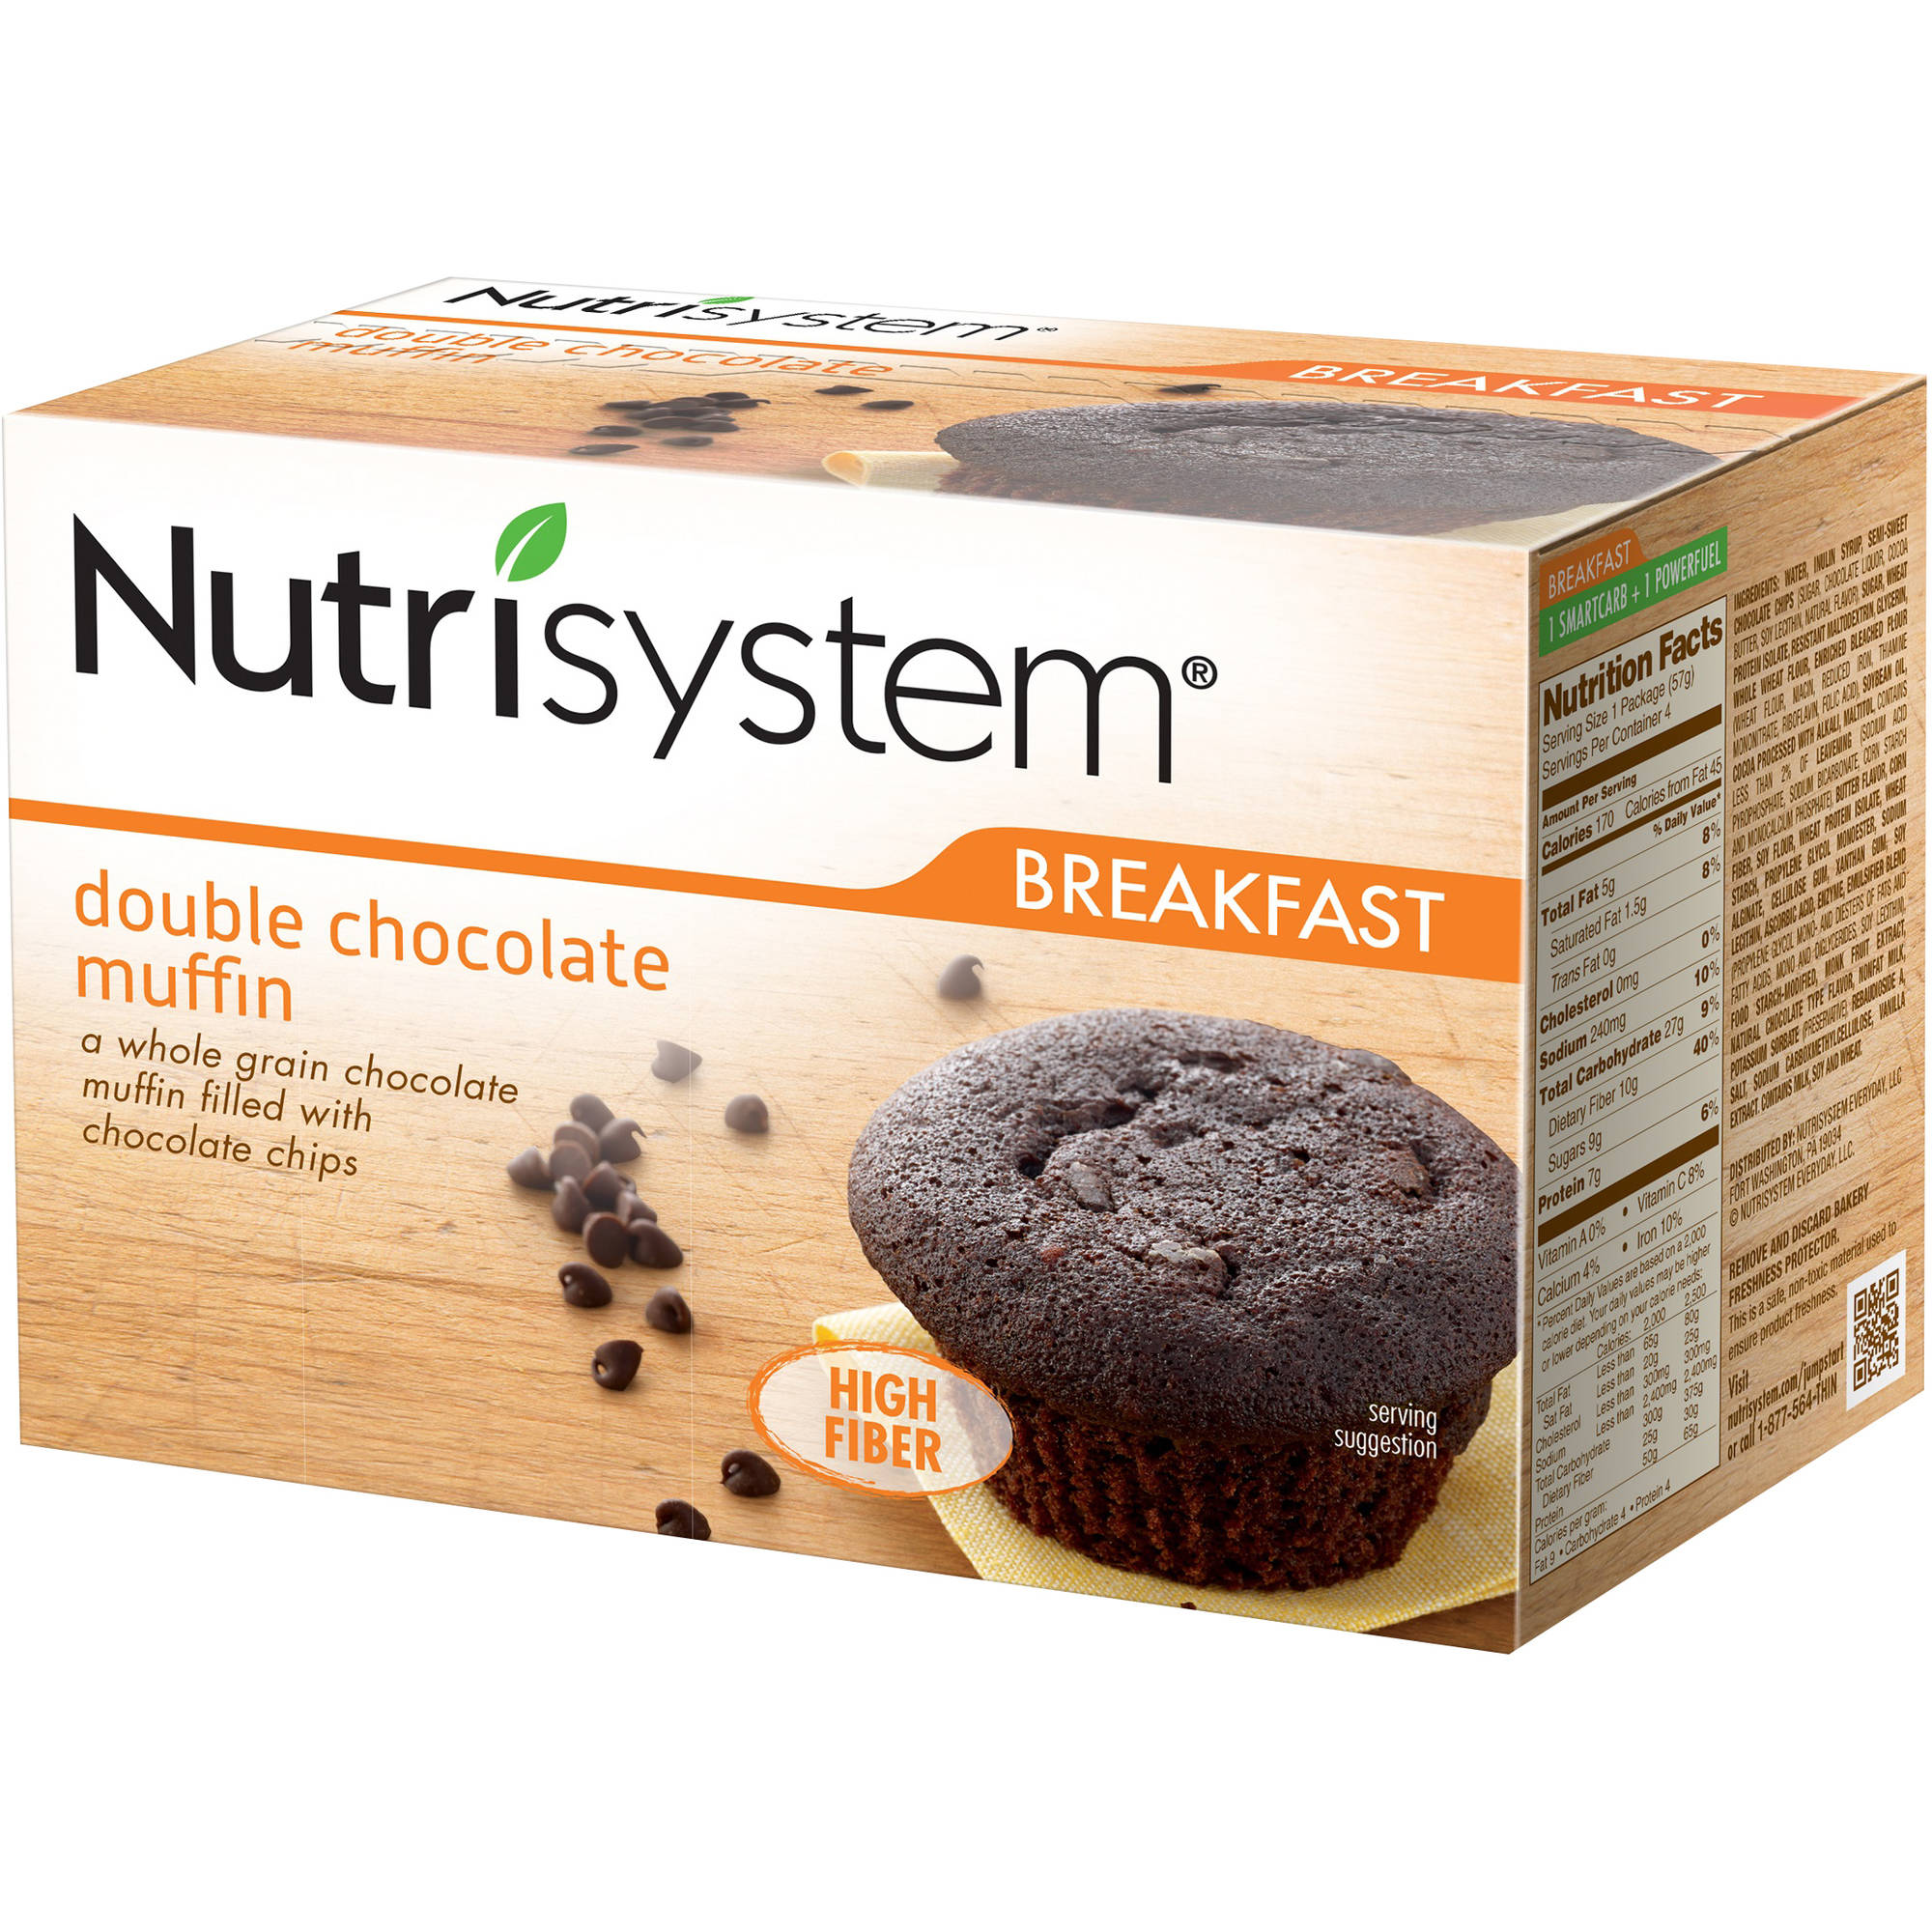 Nutrisystem Double Chocolate Muffins, 2 oz, 4 count, (Pack or 4)